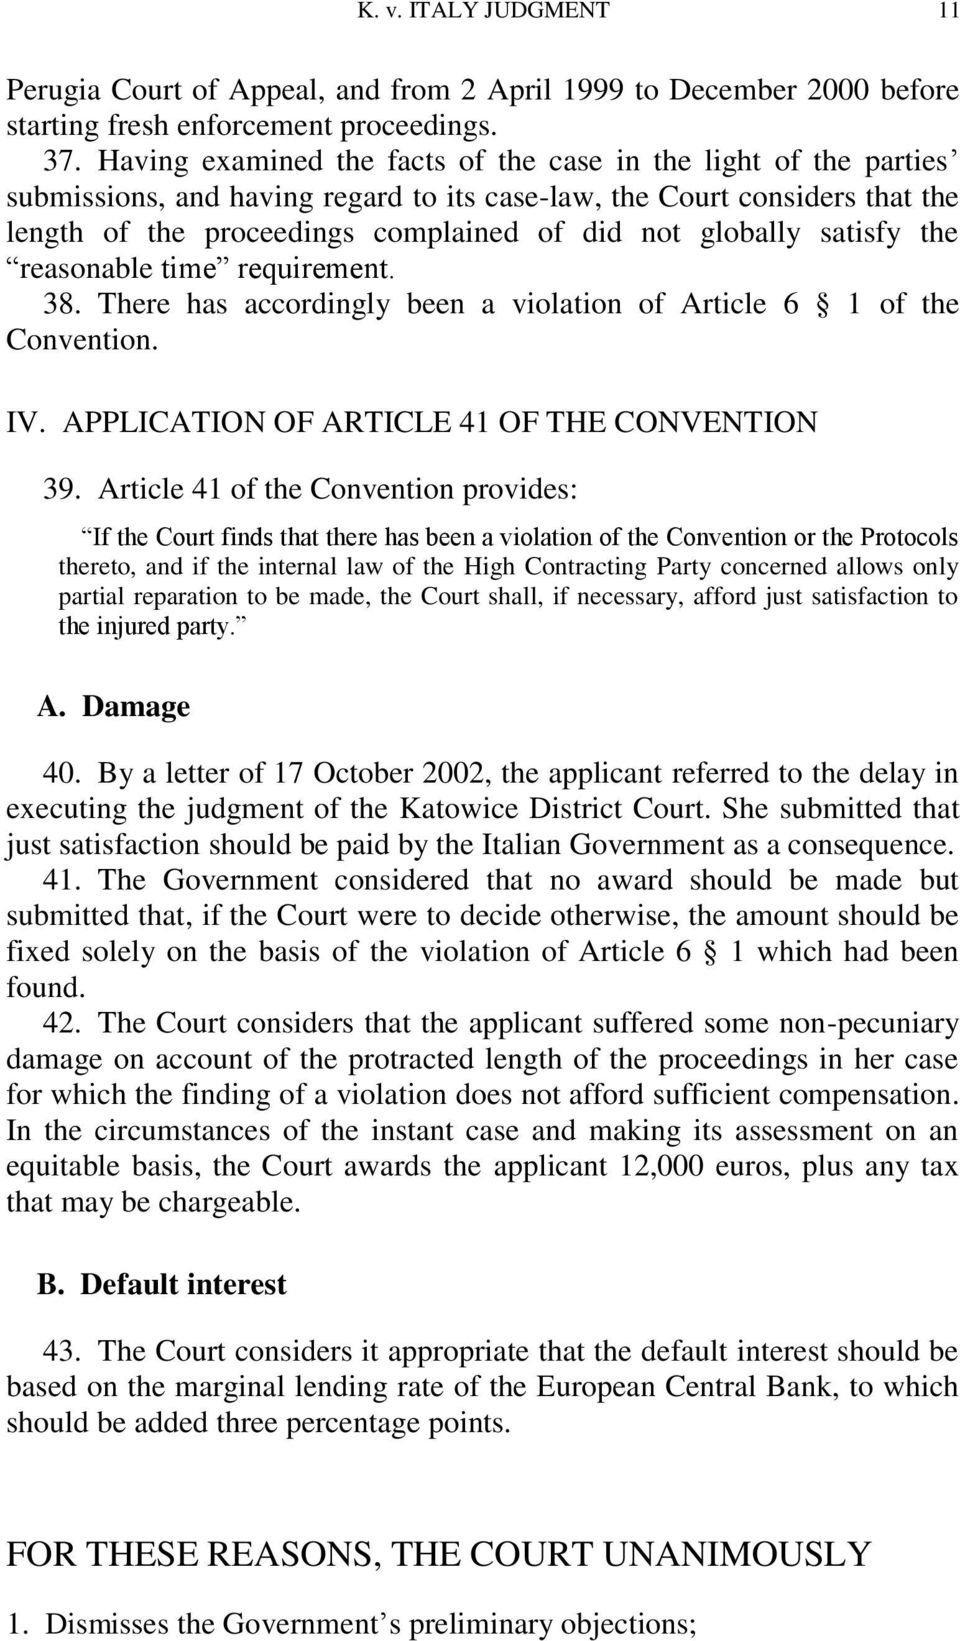 satisfy the reasonable time requirement. 38. There has accordingly been a violation of Article 6 1 of the Convention. IV. APPLICATION OF ARTICLE 41 OF THE CONVENTION 39.